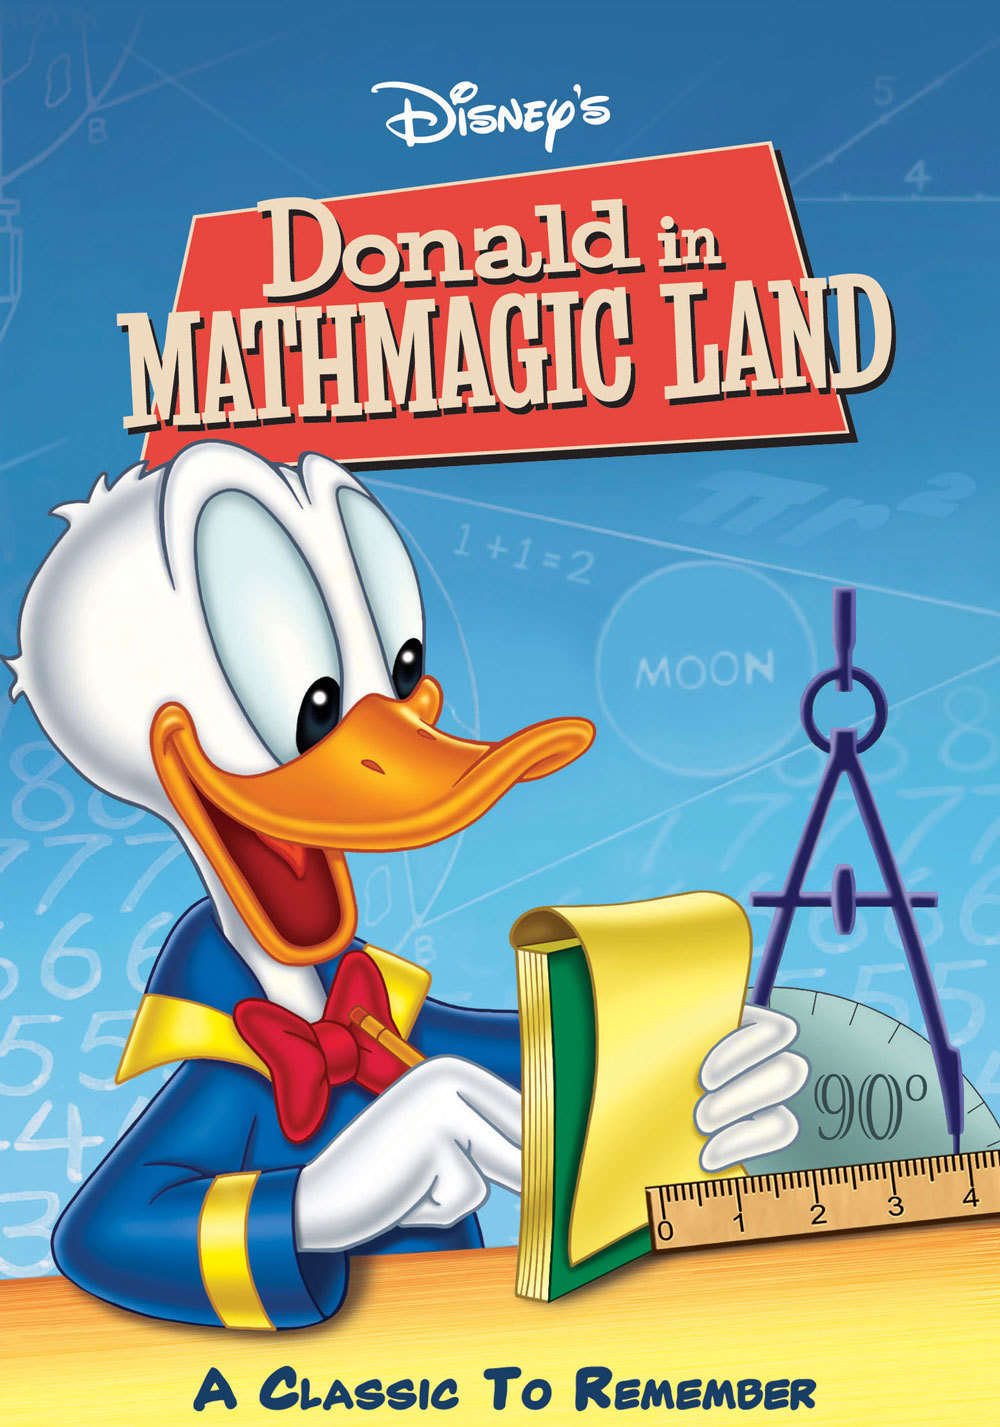 Worksheet Donald In Mathmagic Land Worksheet donald duck in mathmagic land worksheet answers intrepidpath disney movies